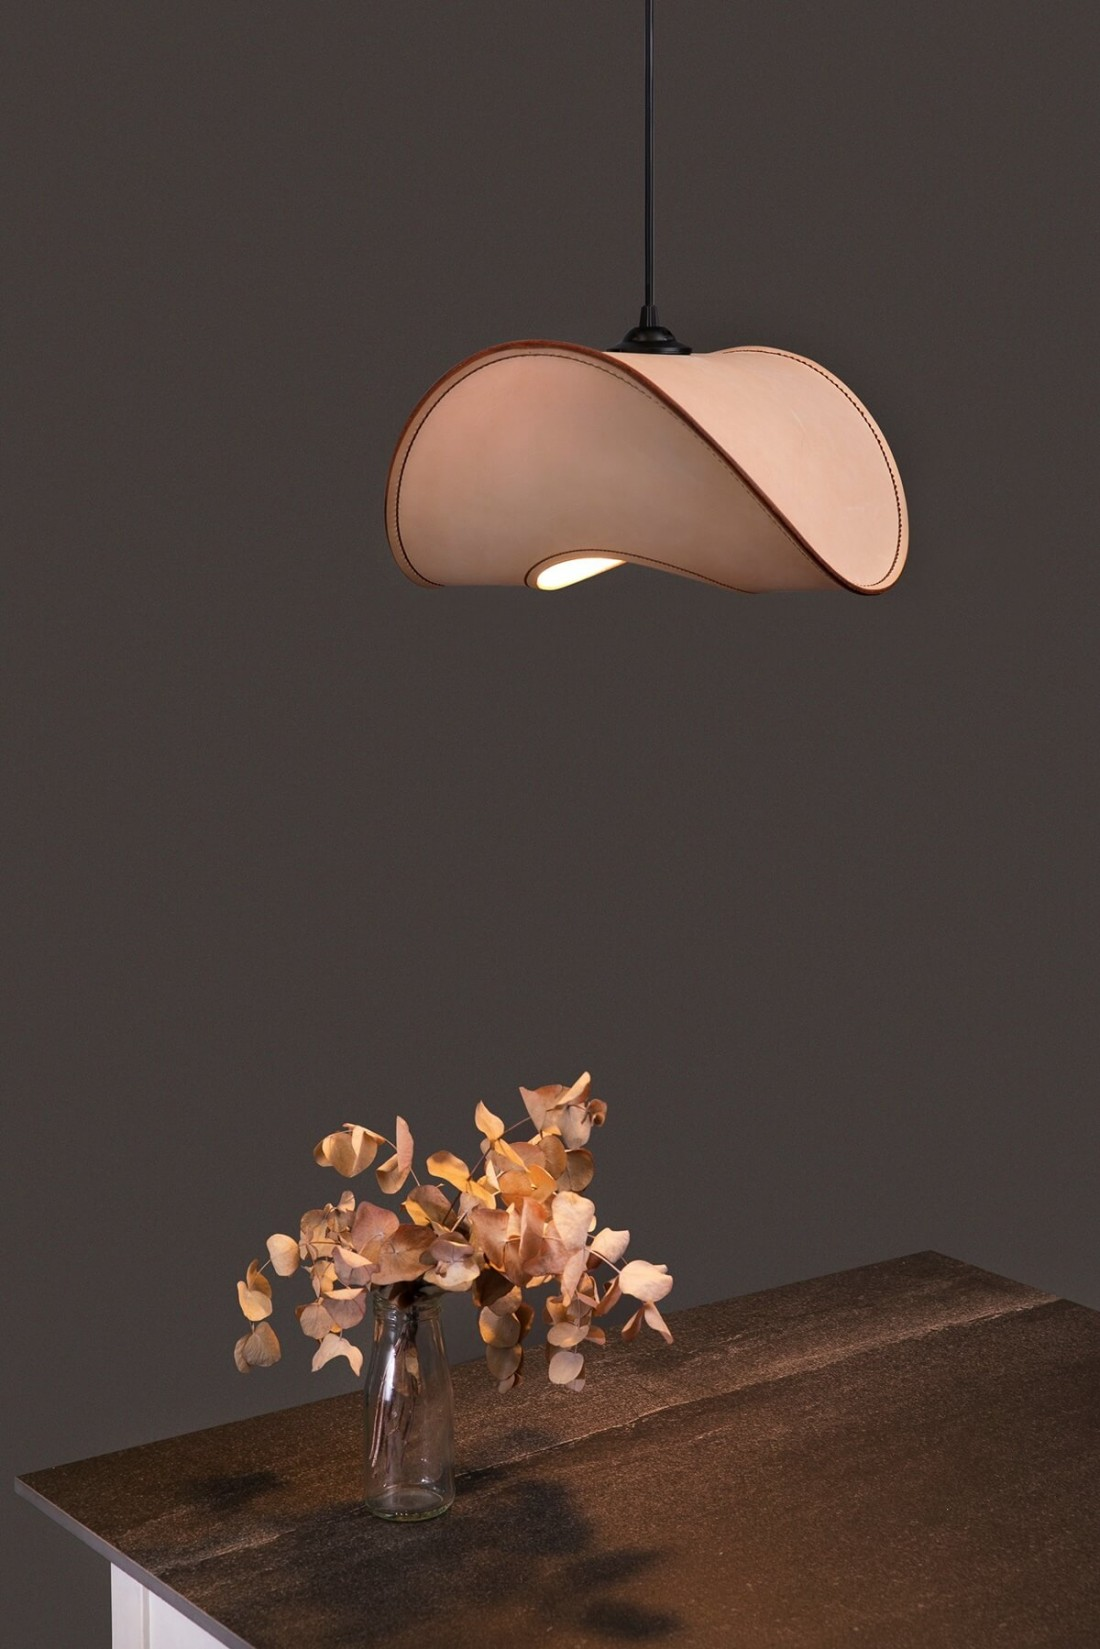 Uniqka Zero Lamp Pendant Natural